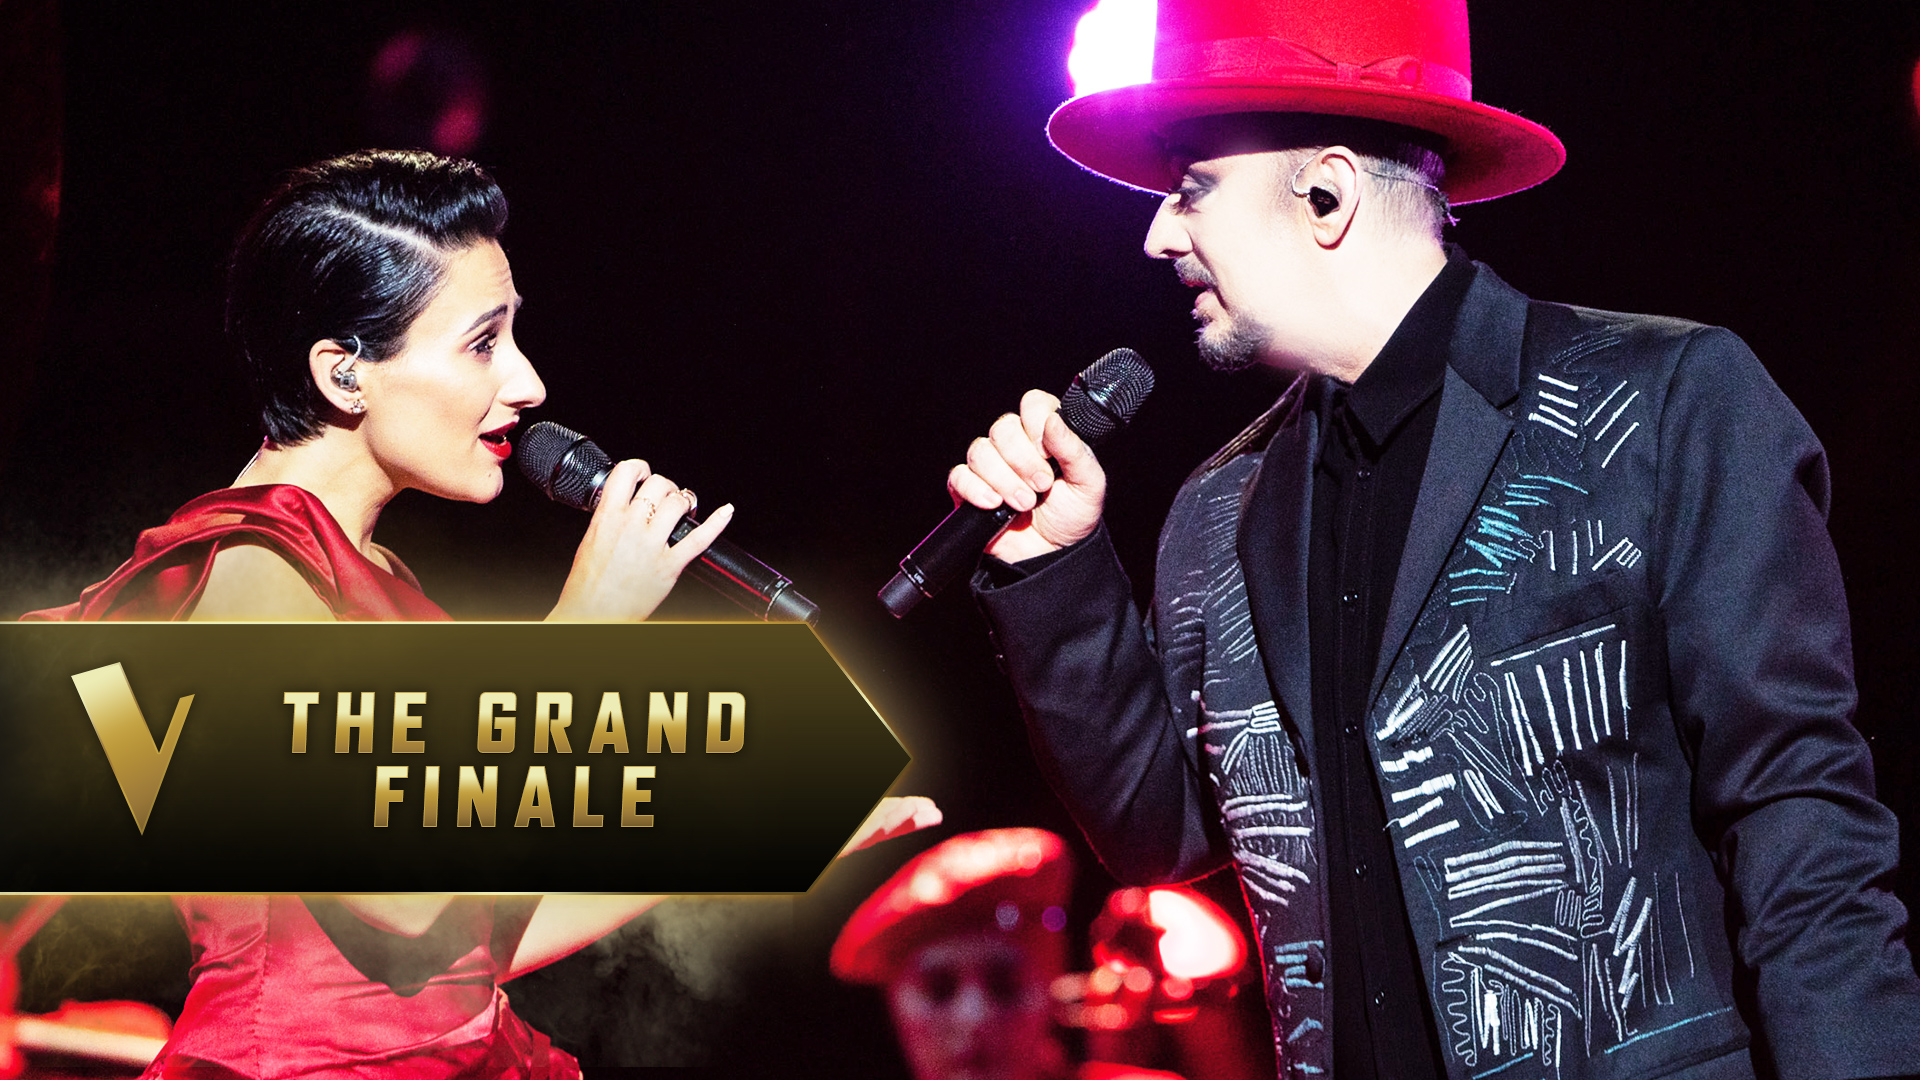 The Grand Finale: Boy George and Diana Rouvas 'Send In The Clowns'